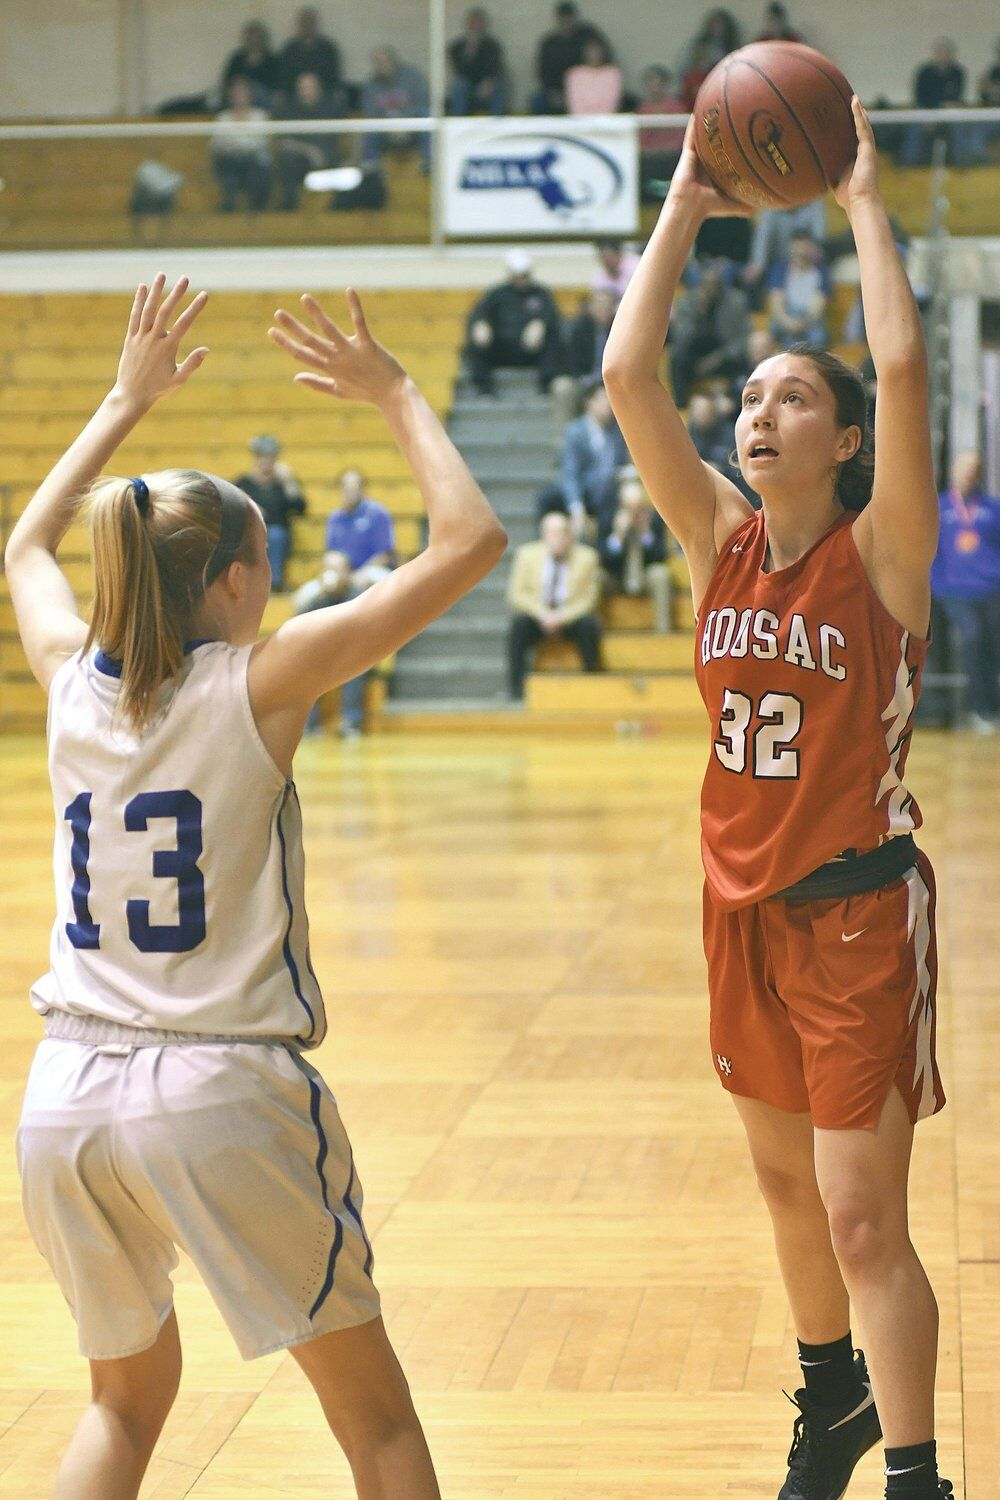 Never doubt a Hurricane: Hoosac Valley girls basketball repeats in state tourney despite steep odds